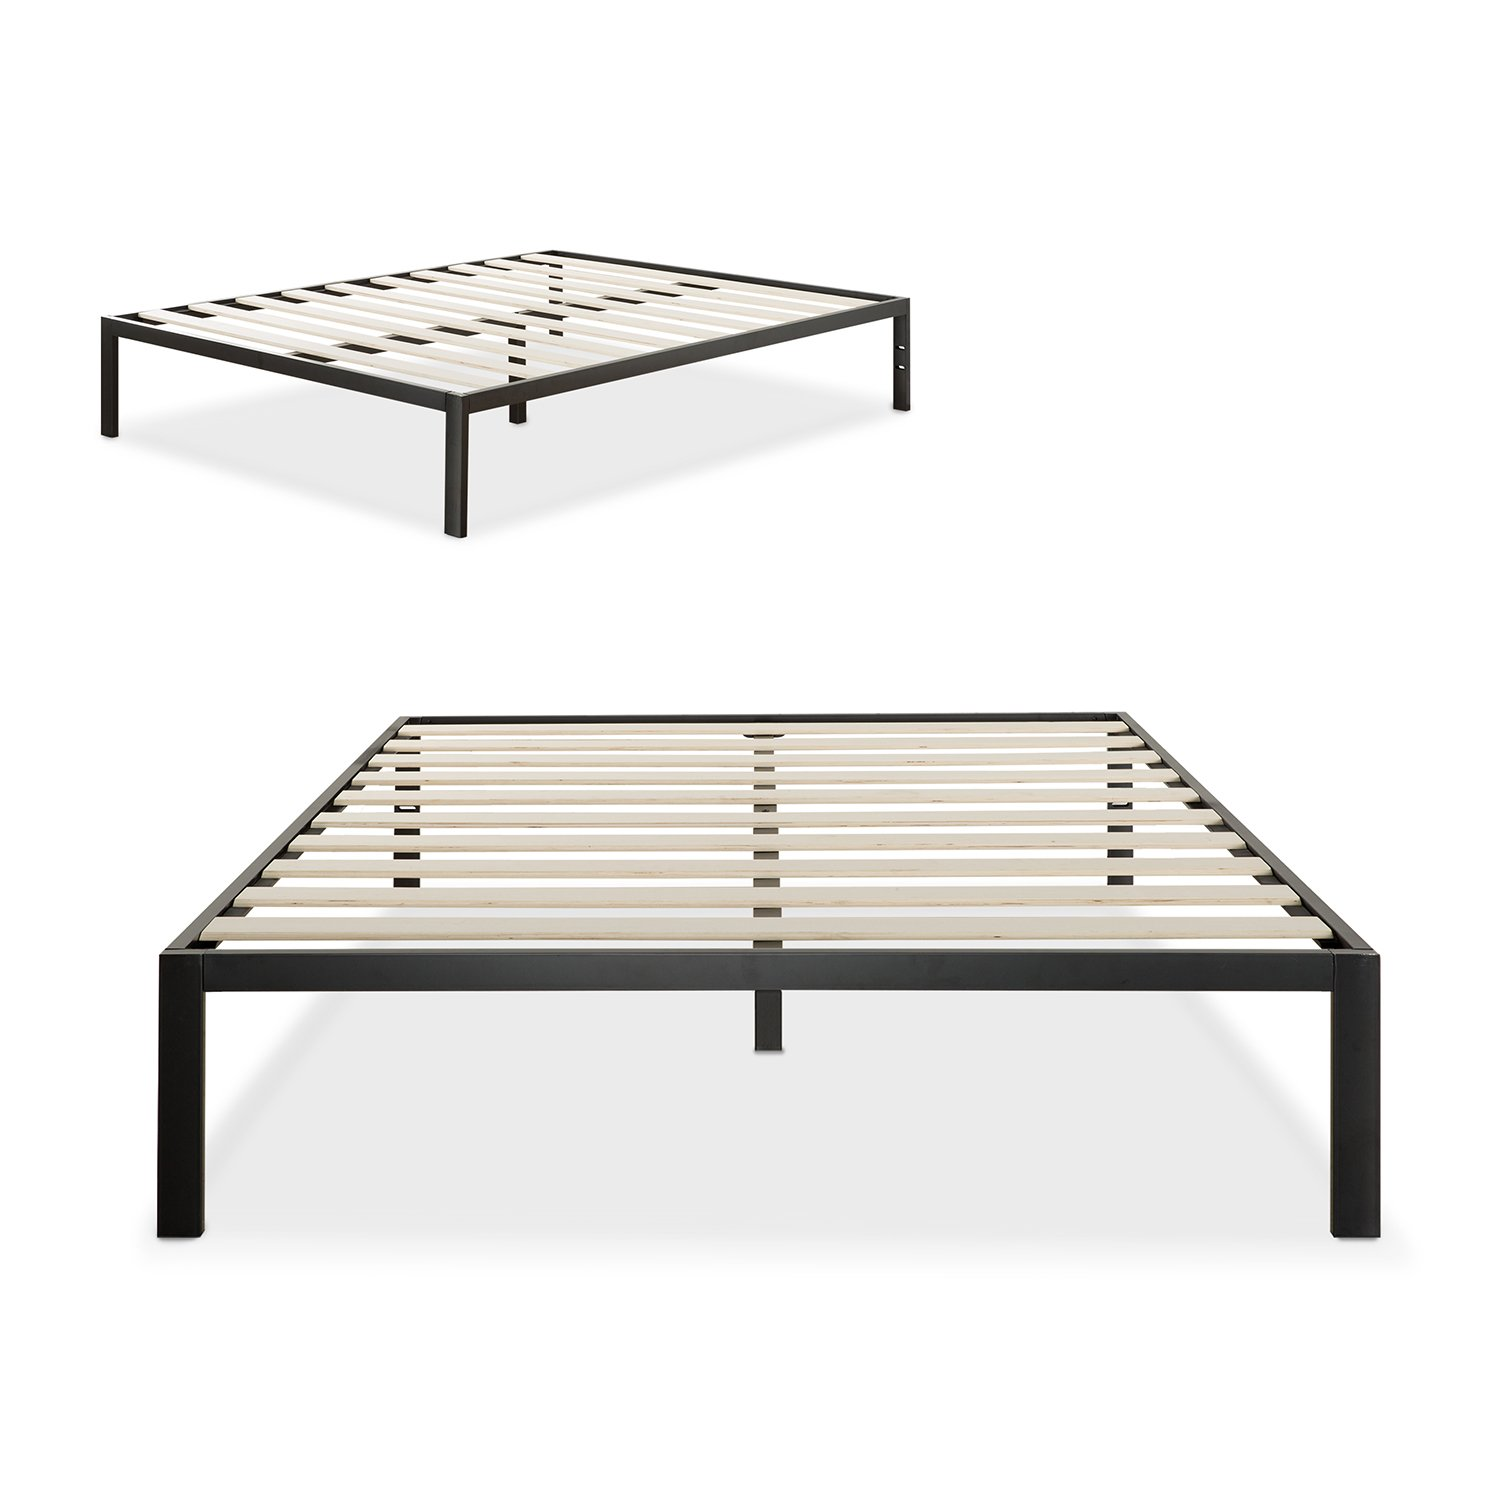 amazoncom zinus modern studio  inch platform  metal bed  - amazoncom zinus modern studio  inch platform  metal bed frame mattress foundation  no boxspring needed  wooden slat support blackqueen